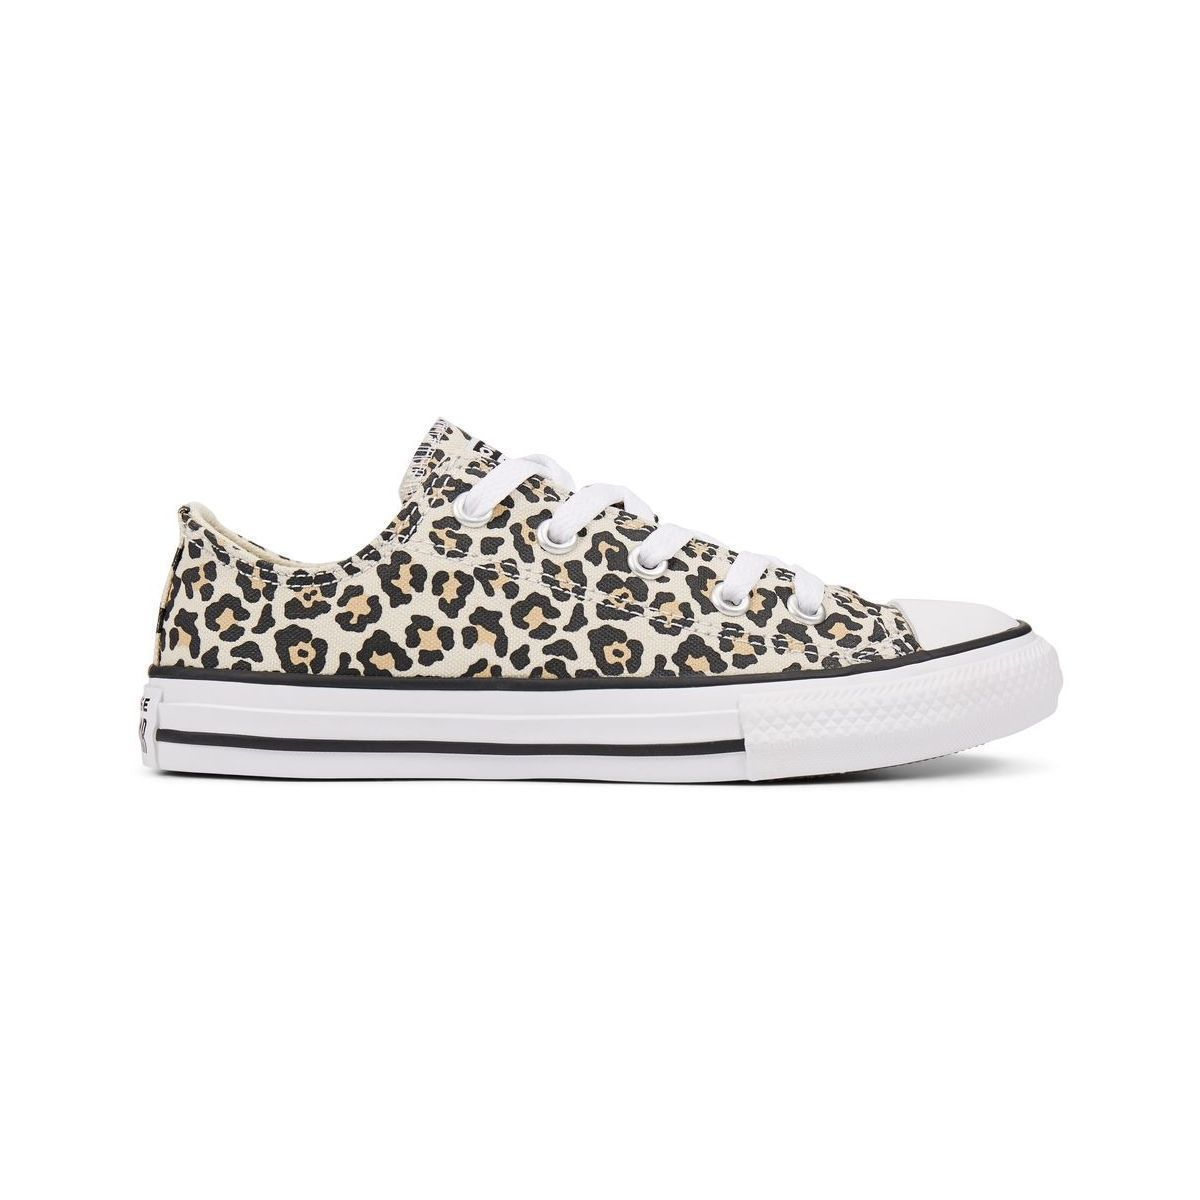 ROMA CHUCK TAYLOR ALL STAR OX:MULTICOLORE/TOILE/TOILE/CAOUTCHOUC/Multicolore